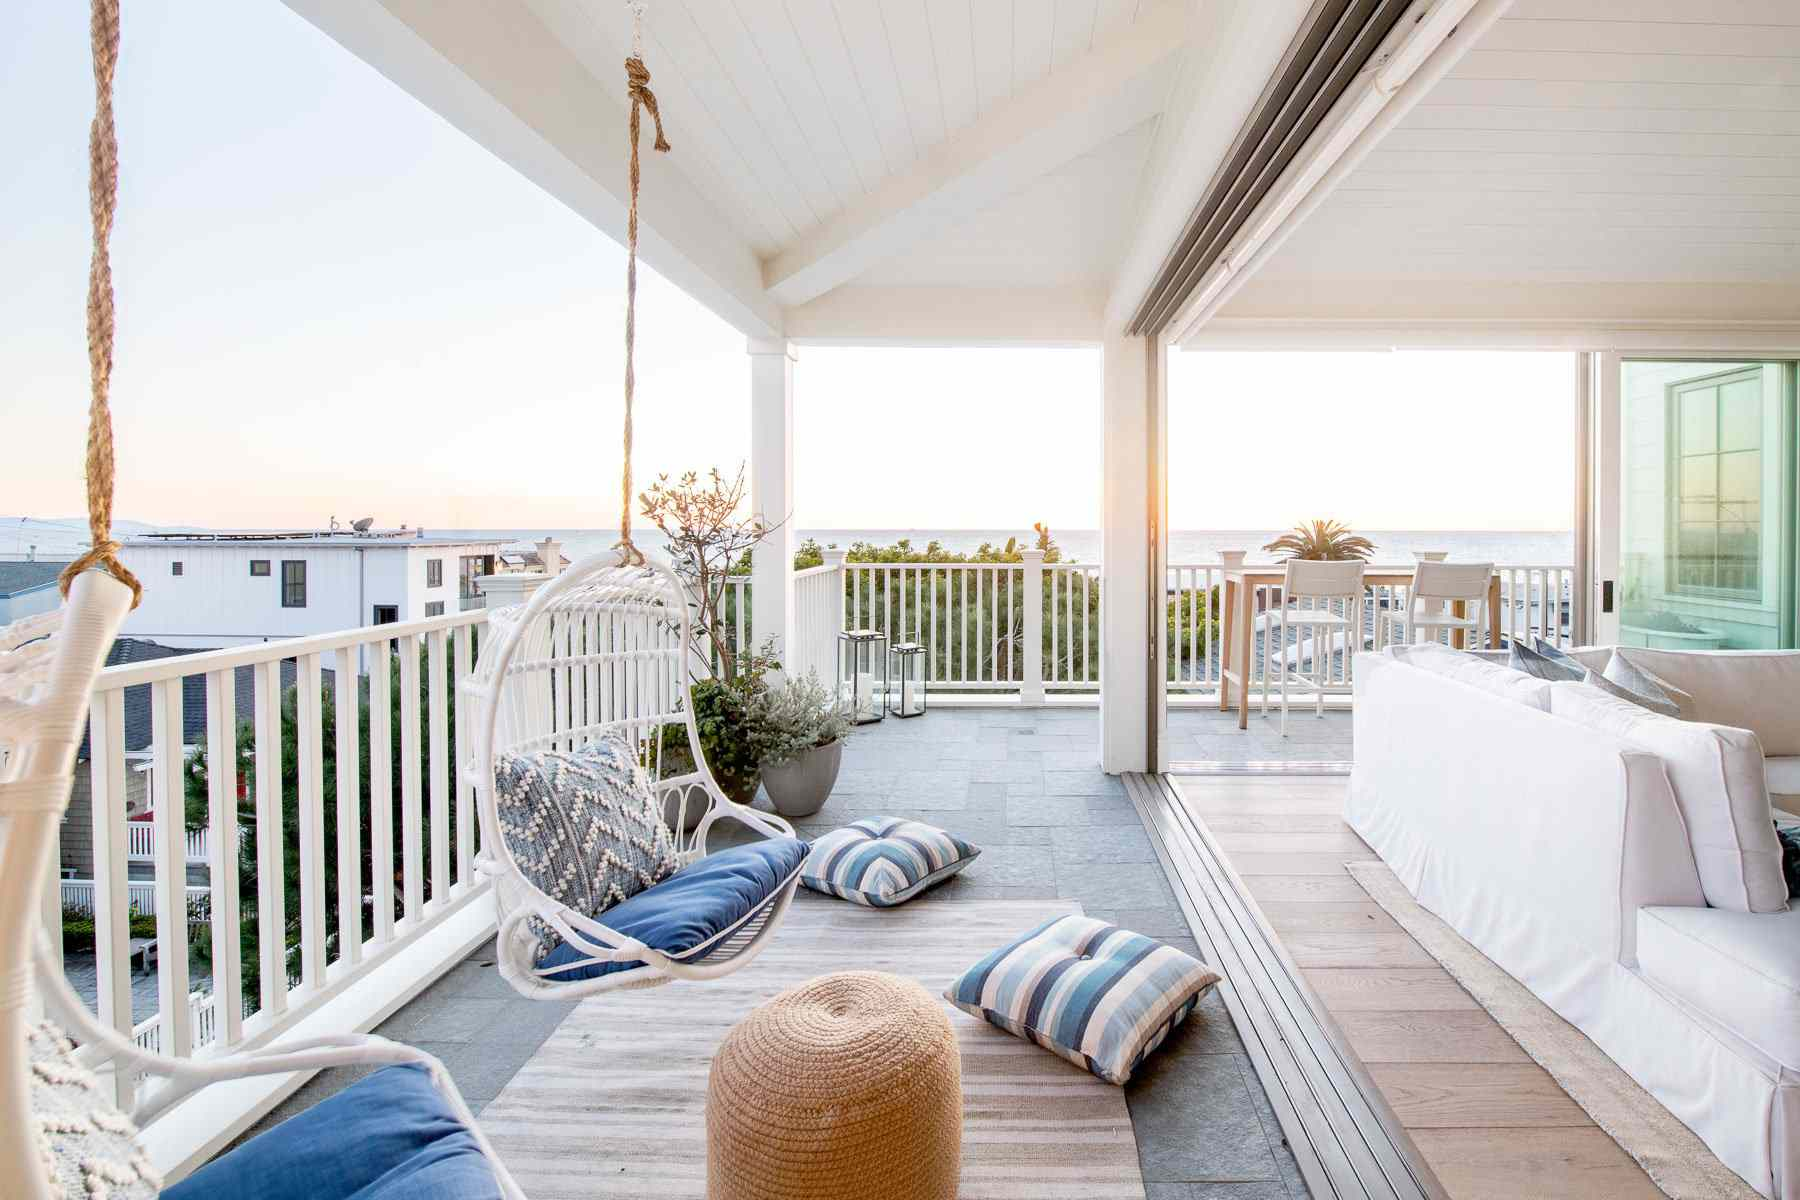 Patio with a swing